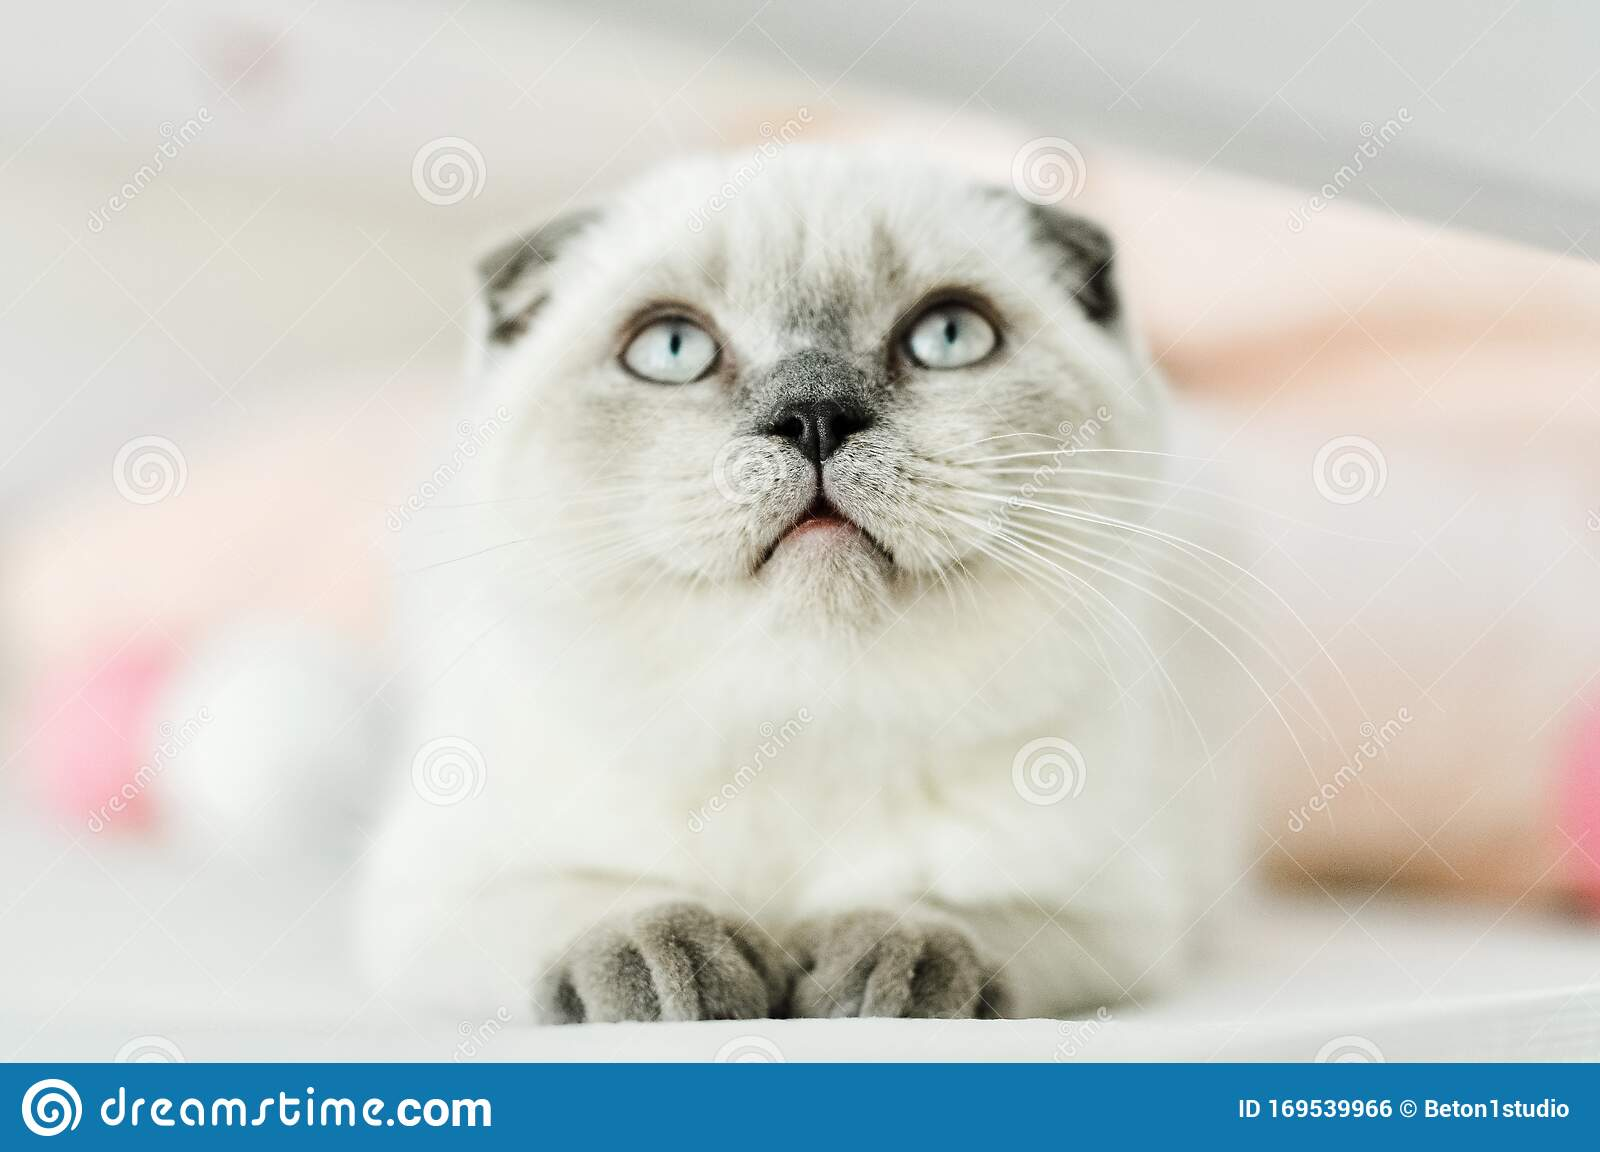 White Scottish Fold Domestic Cat Lying In Bed Beautiful White Kitten Portrait Of Scottish Kitten With Blue Eyes Cute White Cat Stock Photo Image Of Baby Playful 169539966